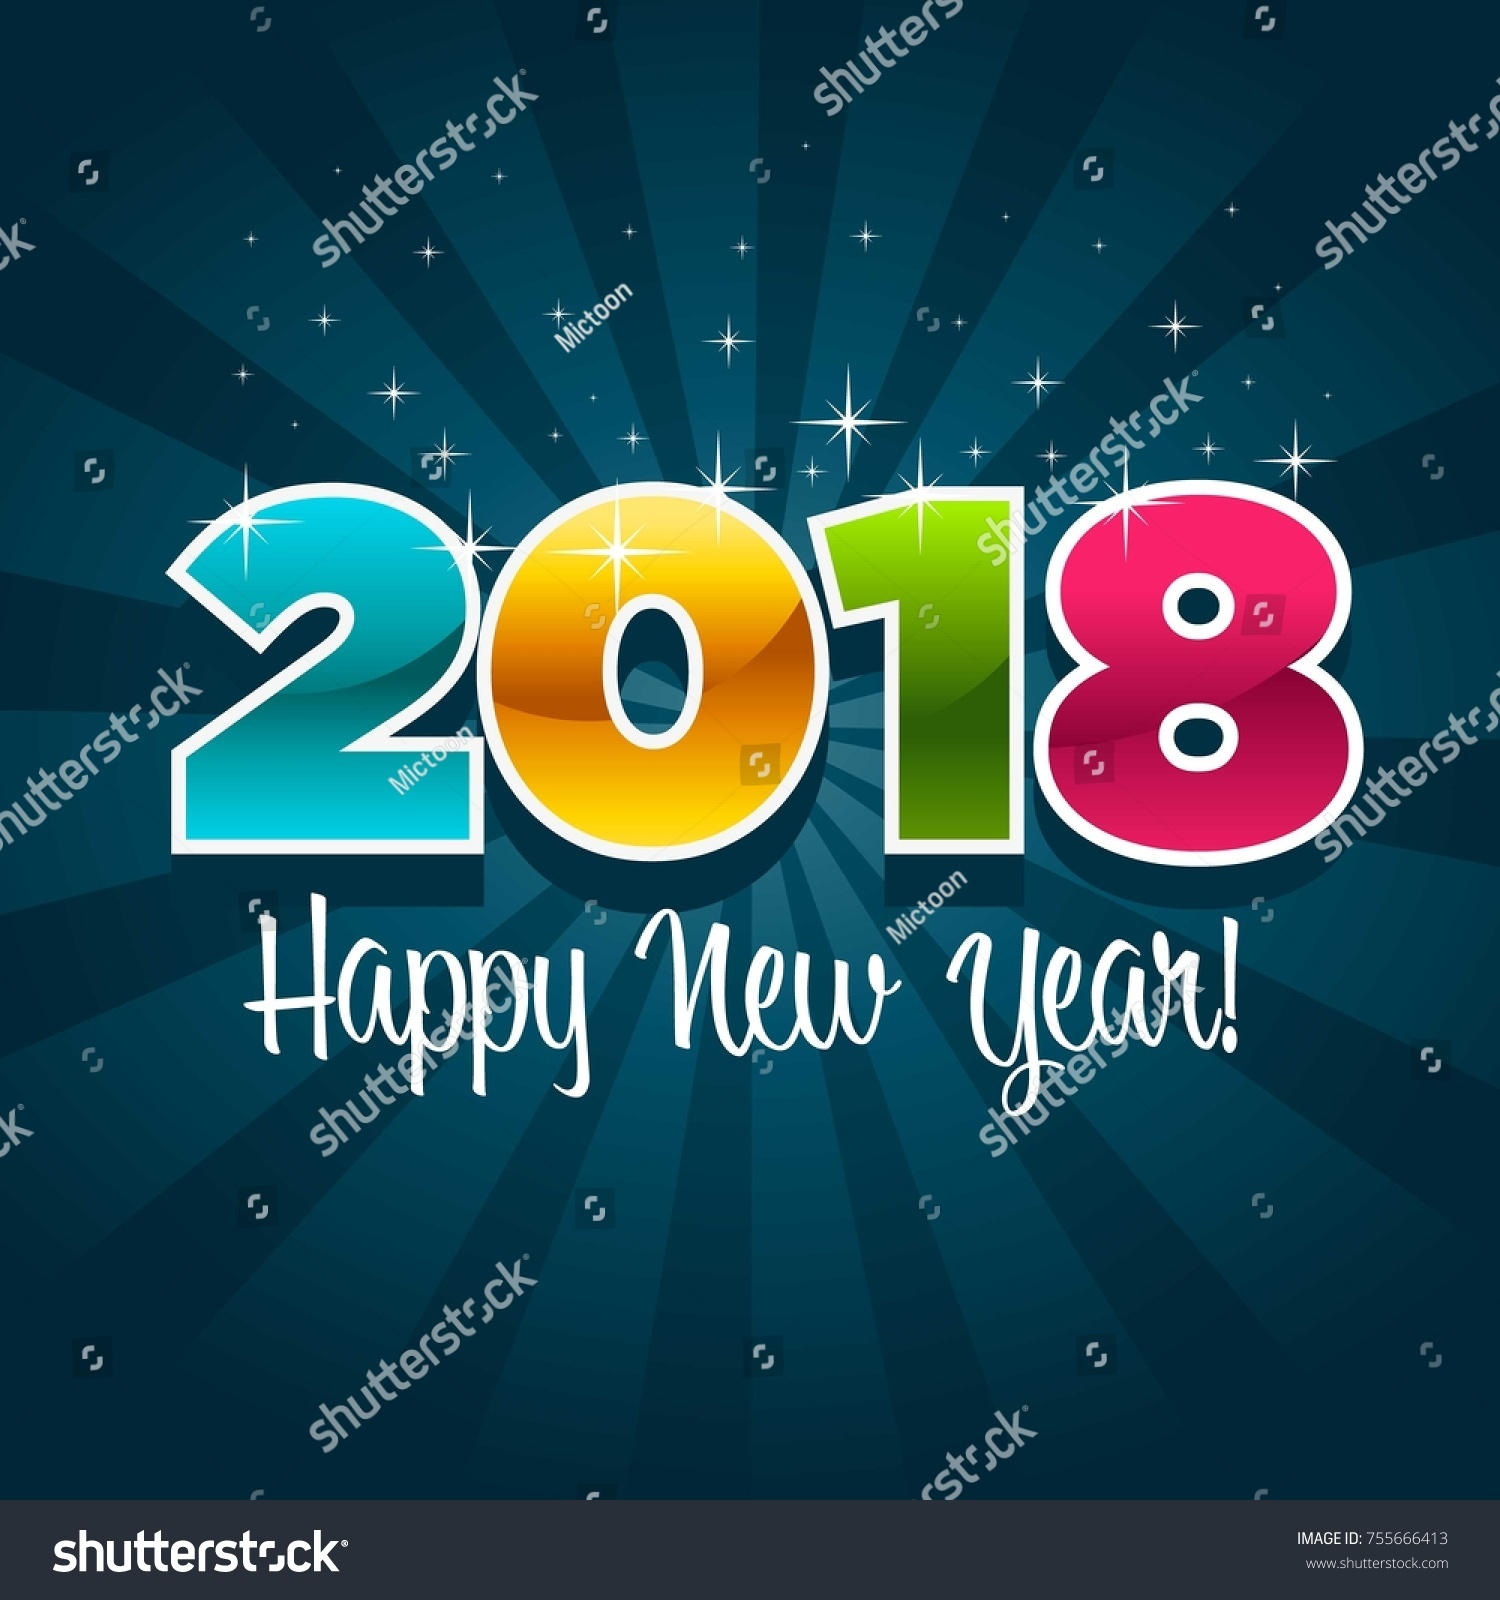 happy new year 2018 greeting card stock vector 755666413